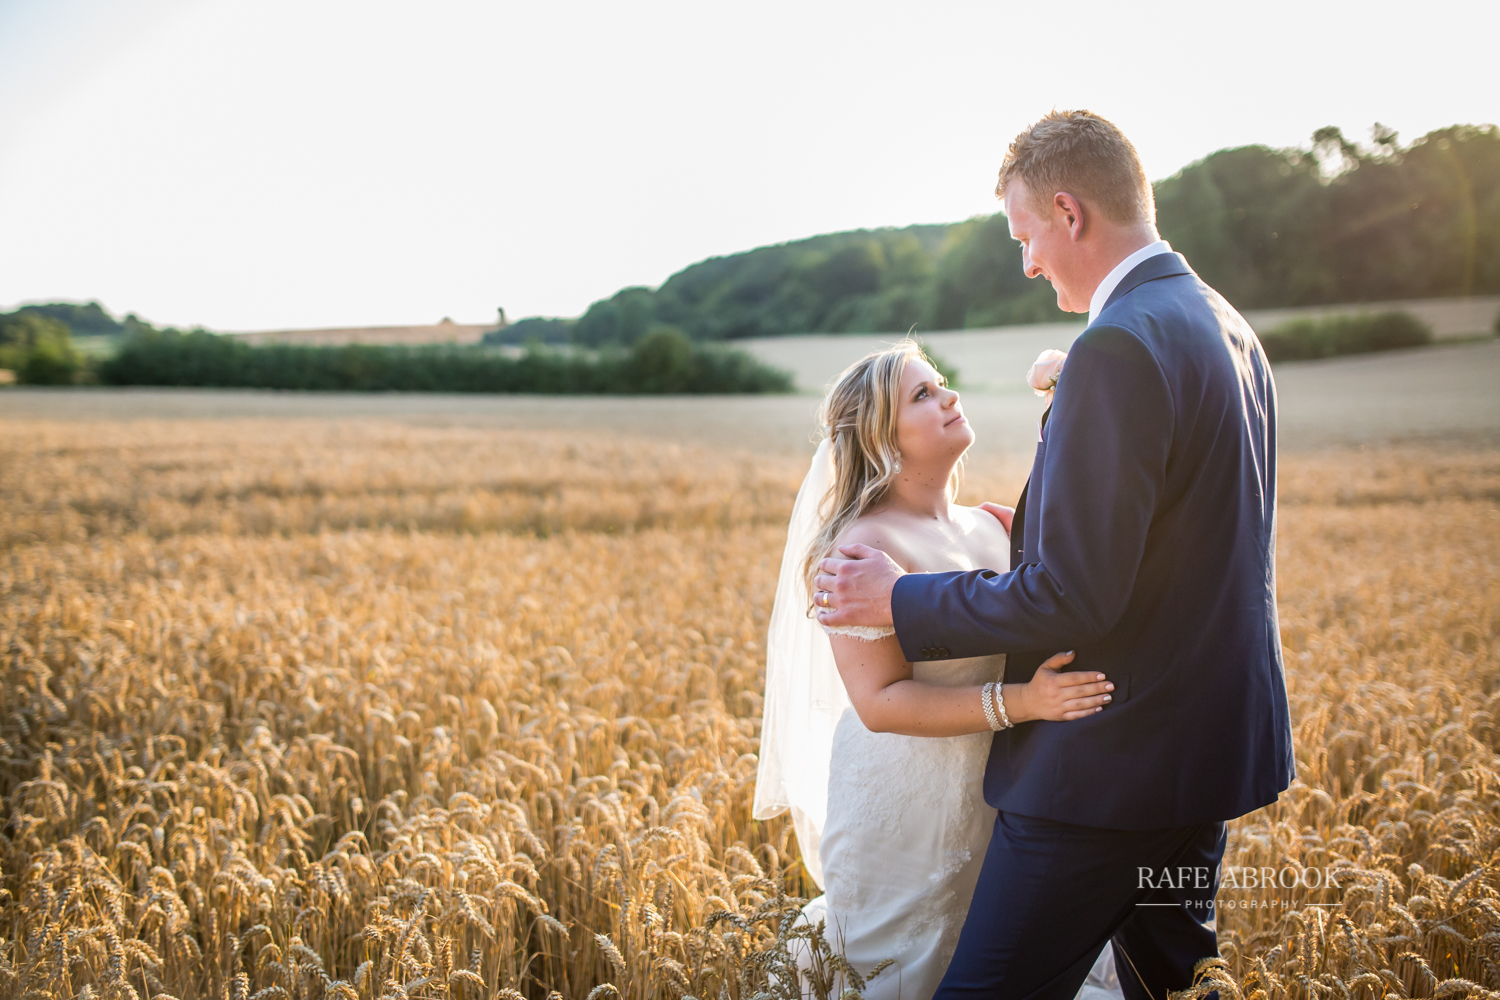 lilley village hall wedding hitchin hertfordshire photographer-1320.jpg